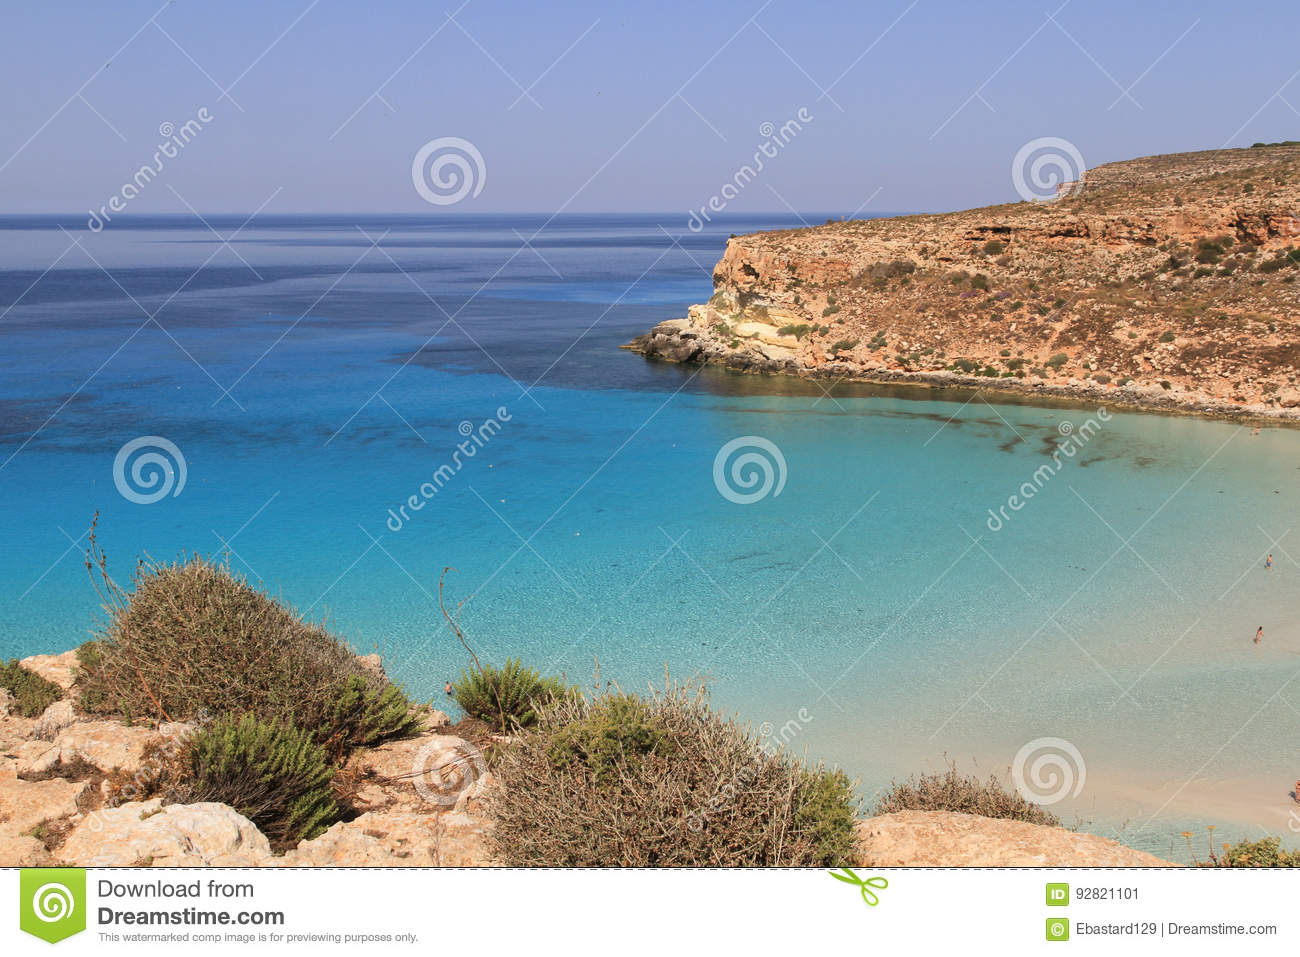 Pure crystalline water surface around an island - Lampedusa, Sic